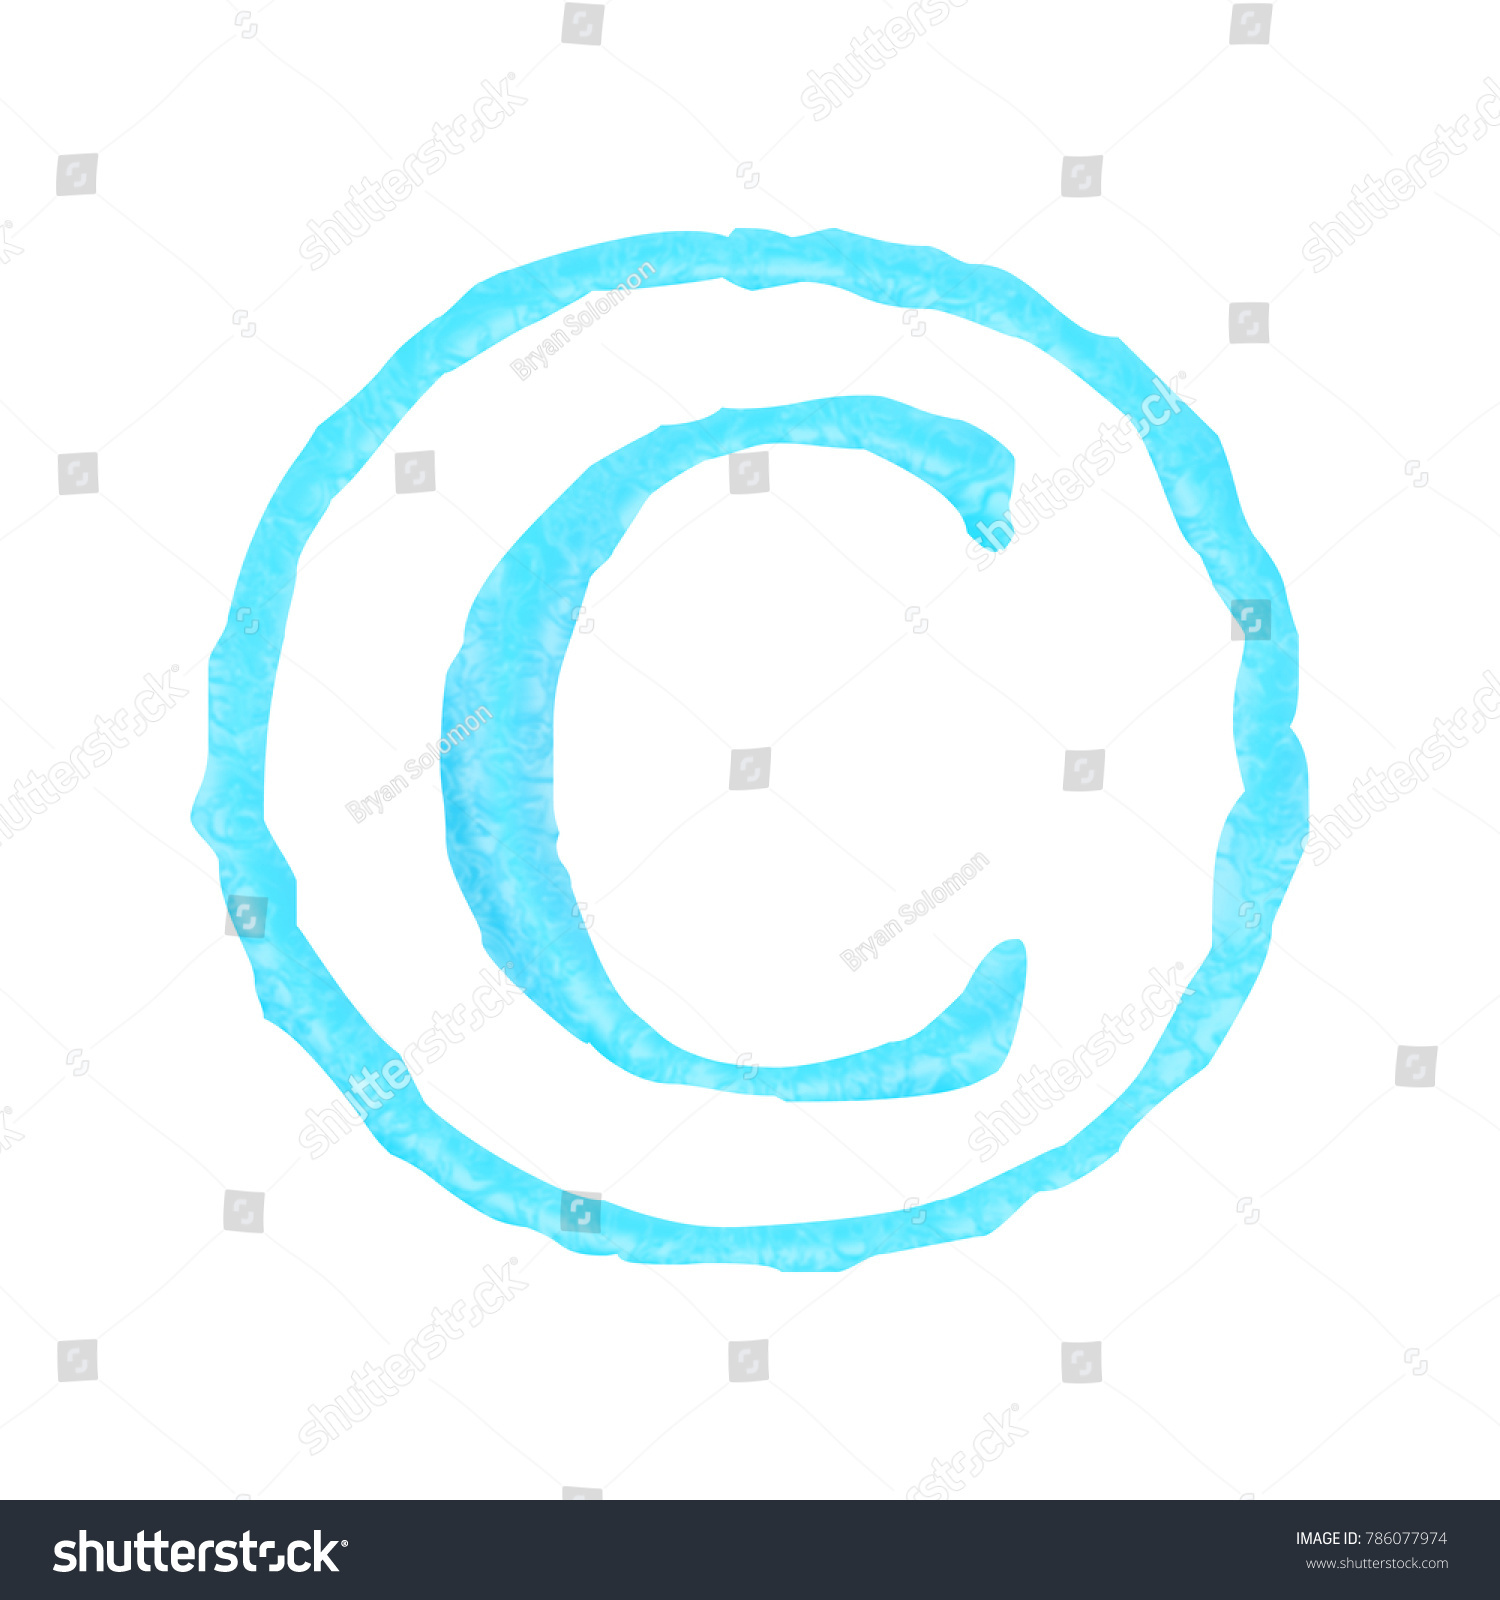 Light Blue Water Style Copyright Symbol Stock Illustration 786077974